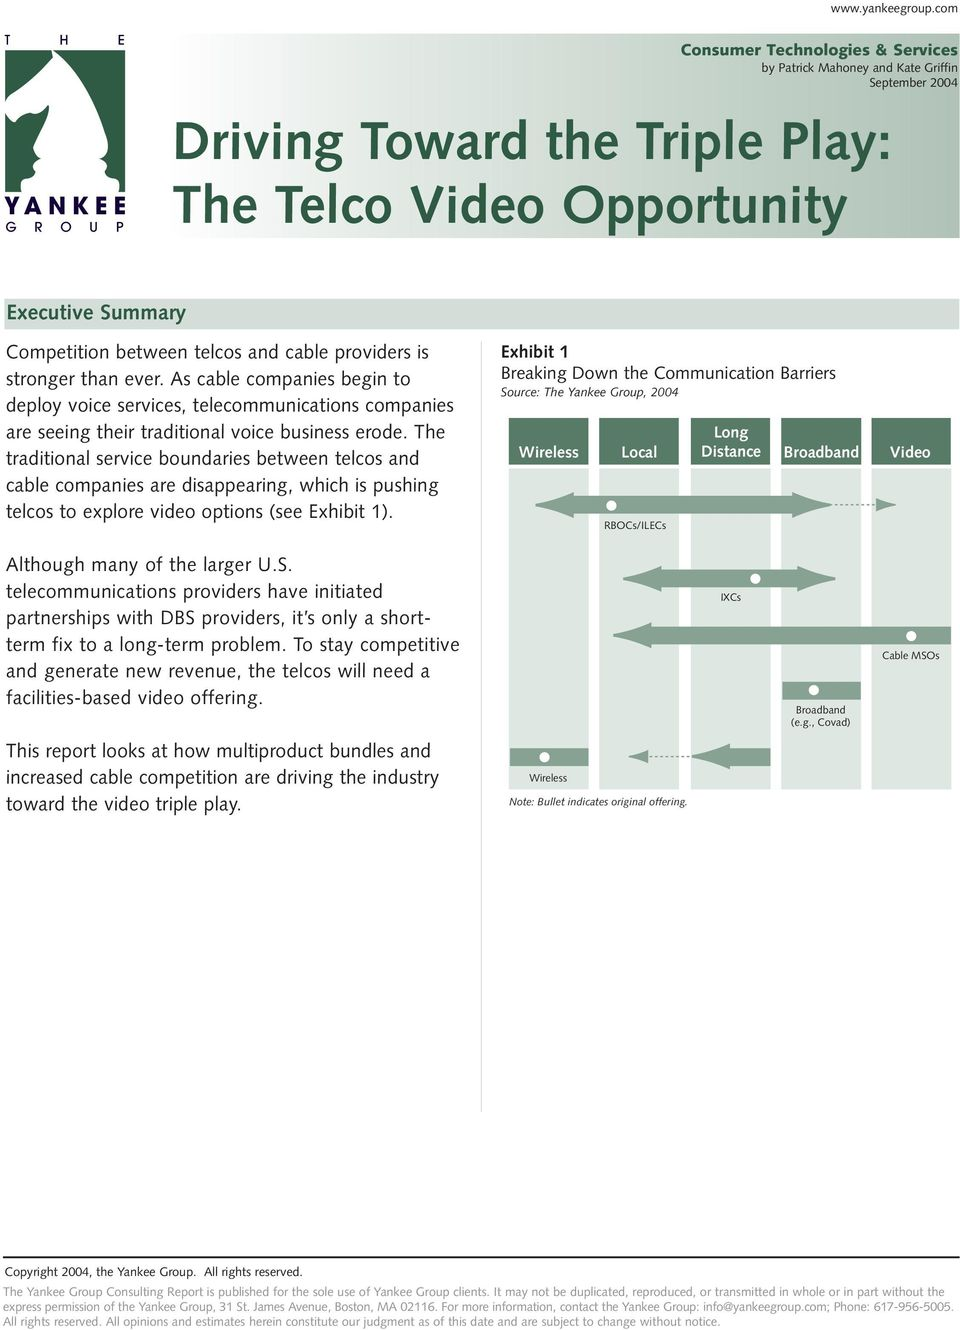 Driving Toward The Triple Play Telco Video Opportunity Pdf Their Fibre Optic Cables To Smaller Rival Players Make Some Profit Competition Between Telcos And Cable Providers Is Stronger Than Ever As Companies Begin